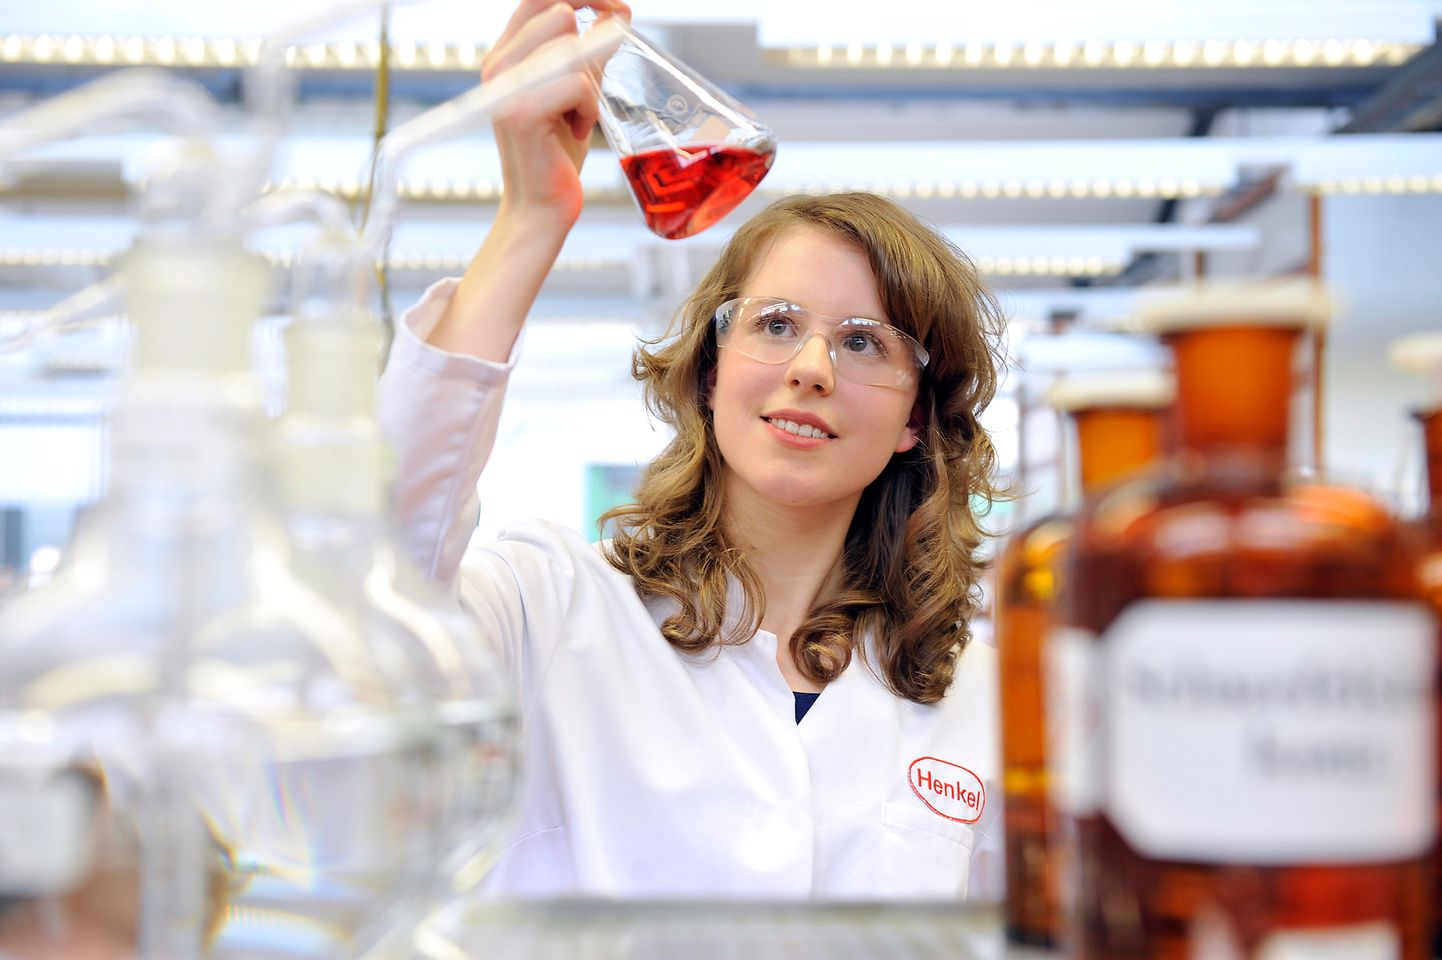 Henkel has spent the last three decades working intensively within research partnerships on the development of high-performance enzymes